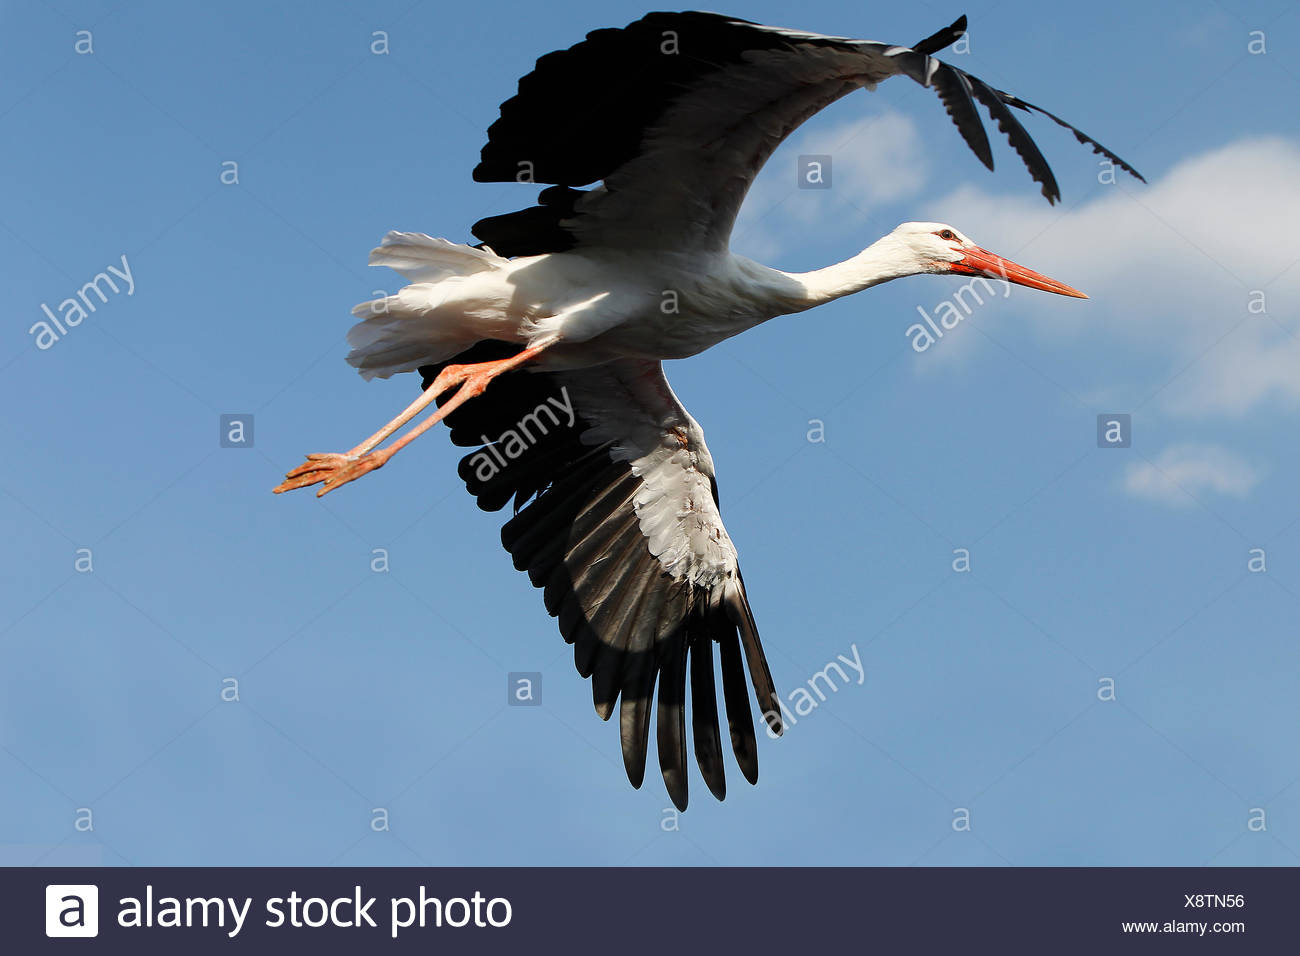 White Stork, ciconia ciconia, Adult in Flight against Blue Sky Stock Photo